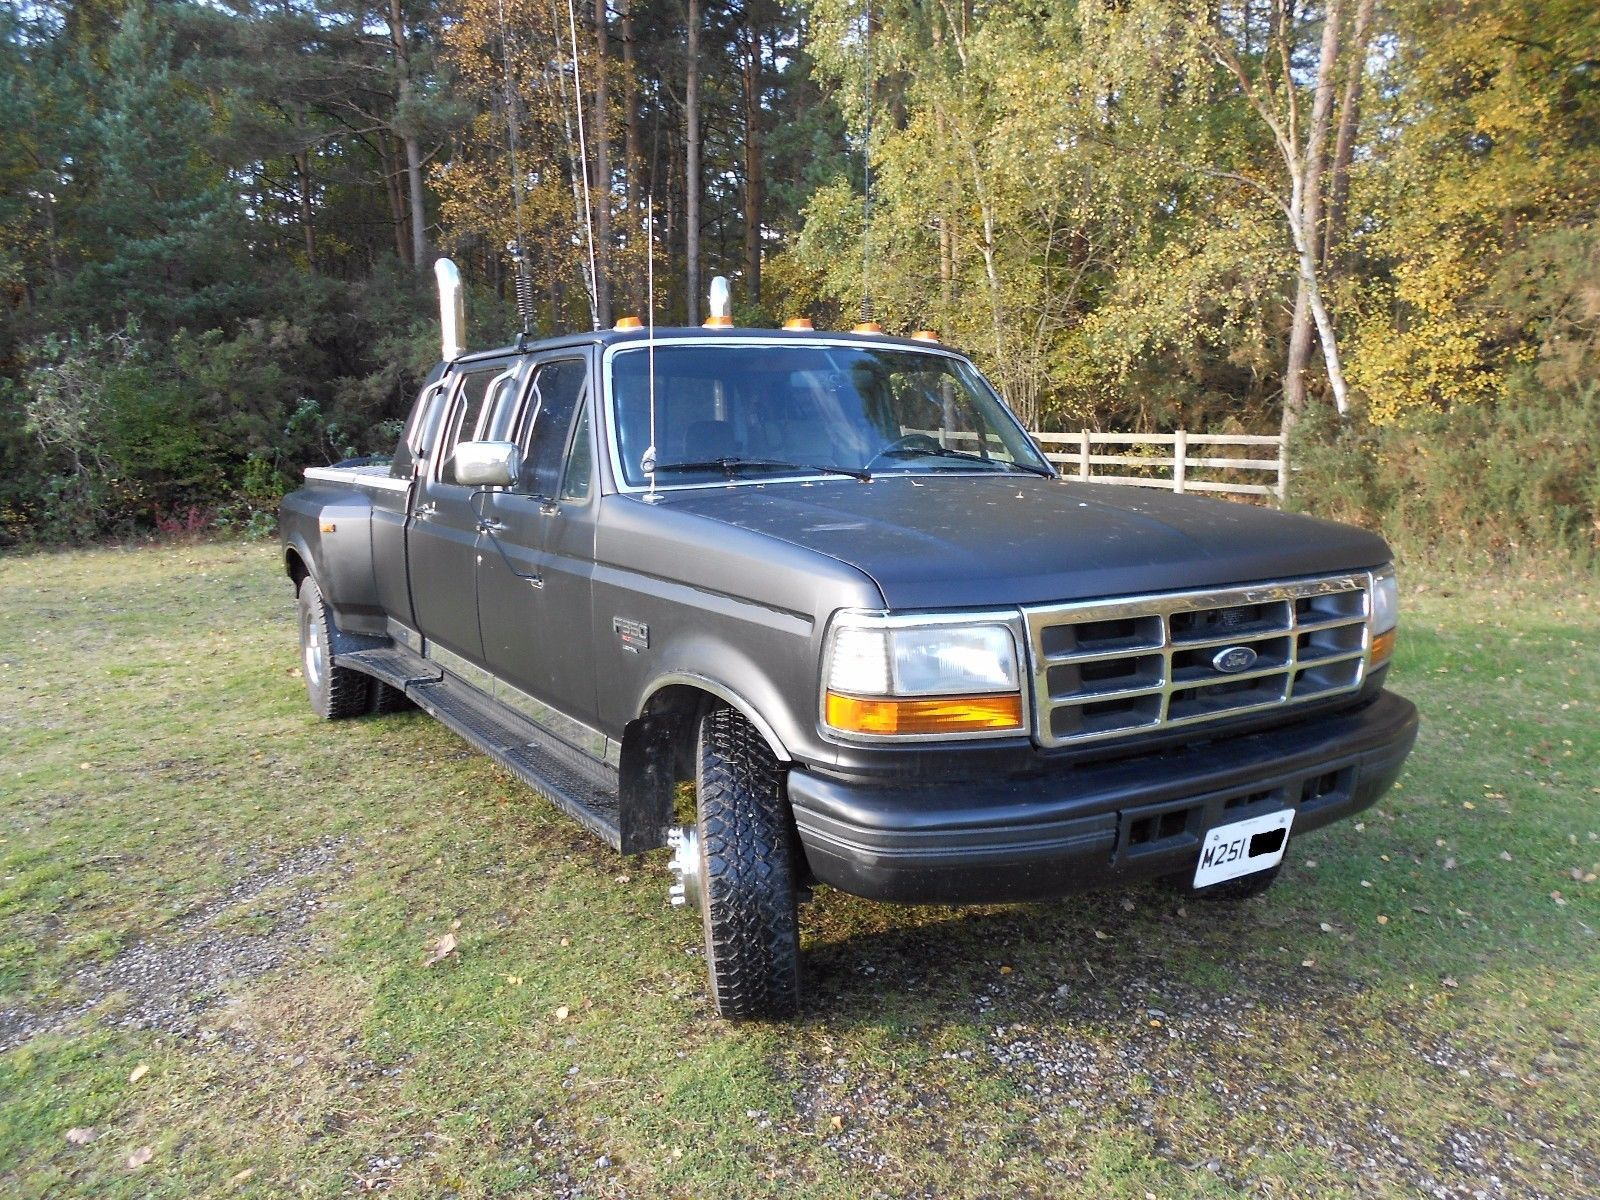 1994 ford f350 7.3l diesel dually 8ft bed pickup Ford